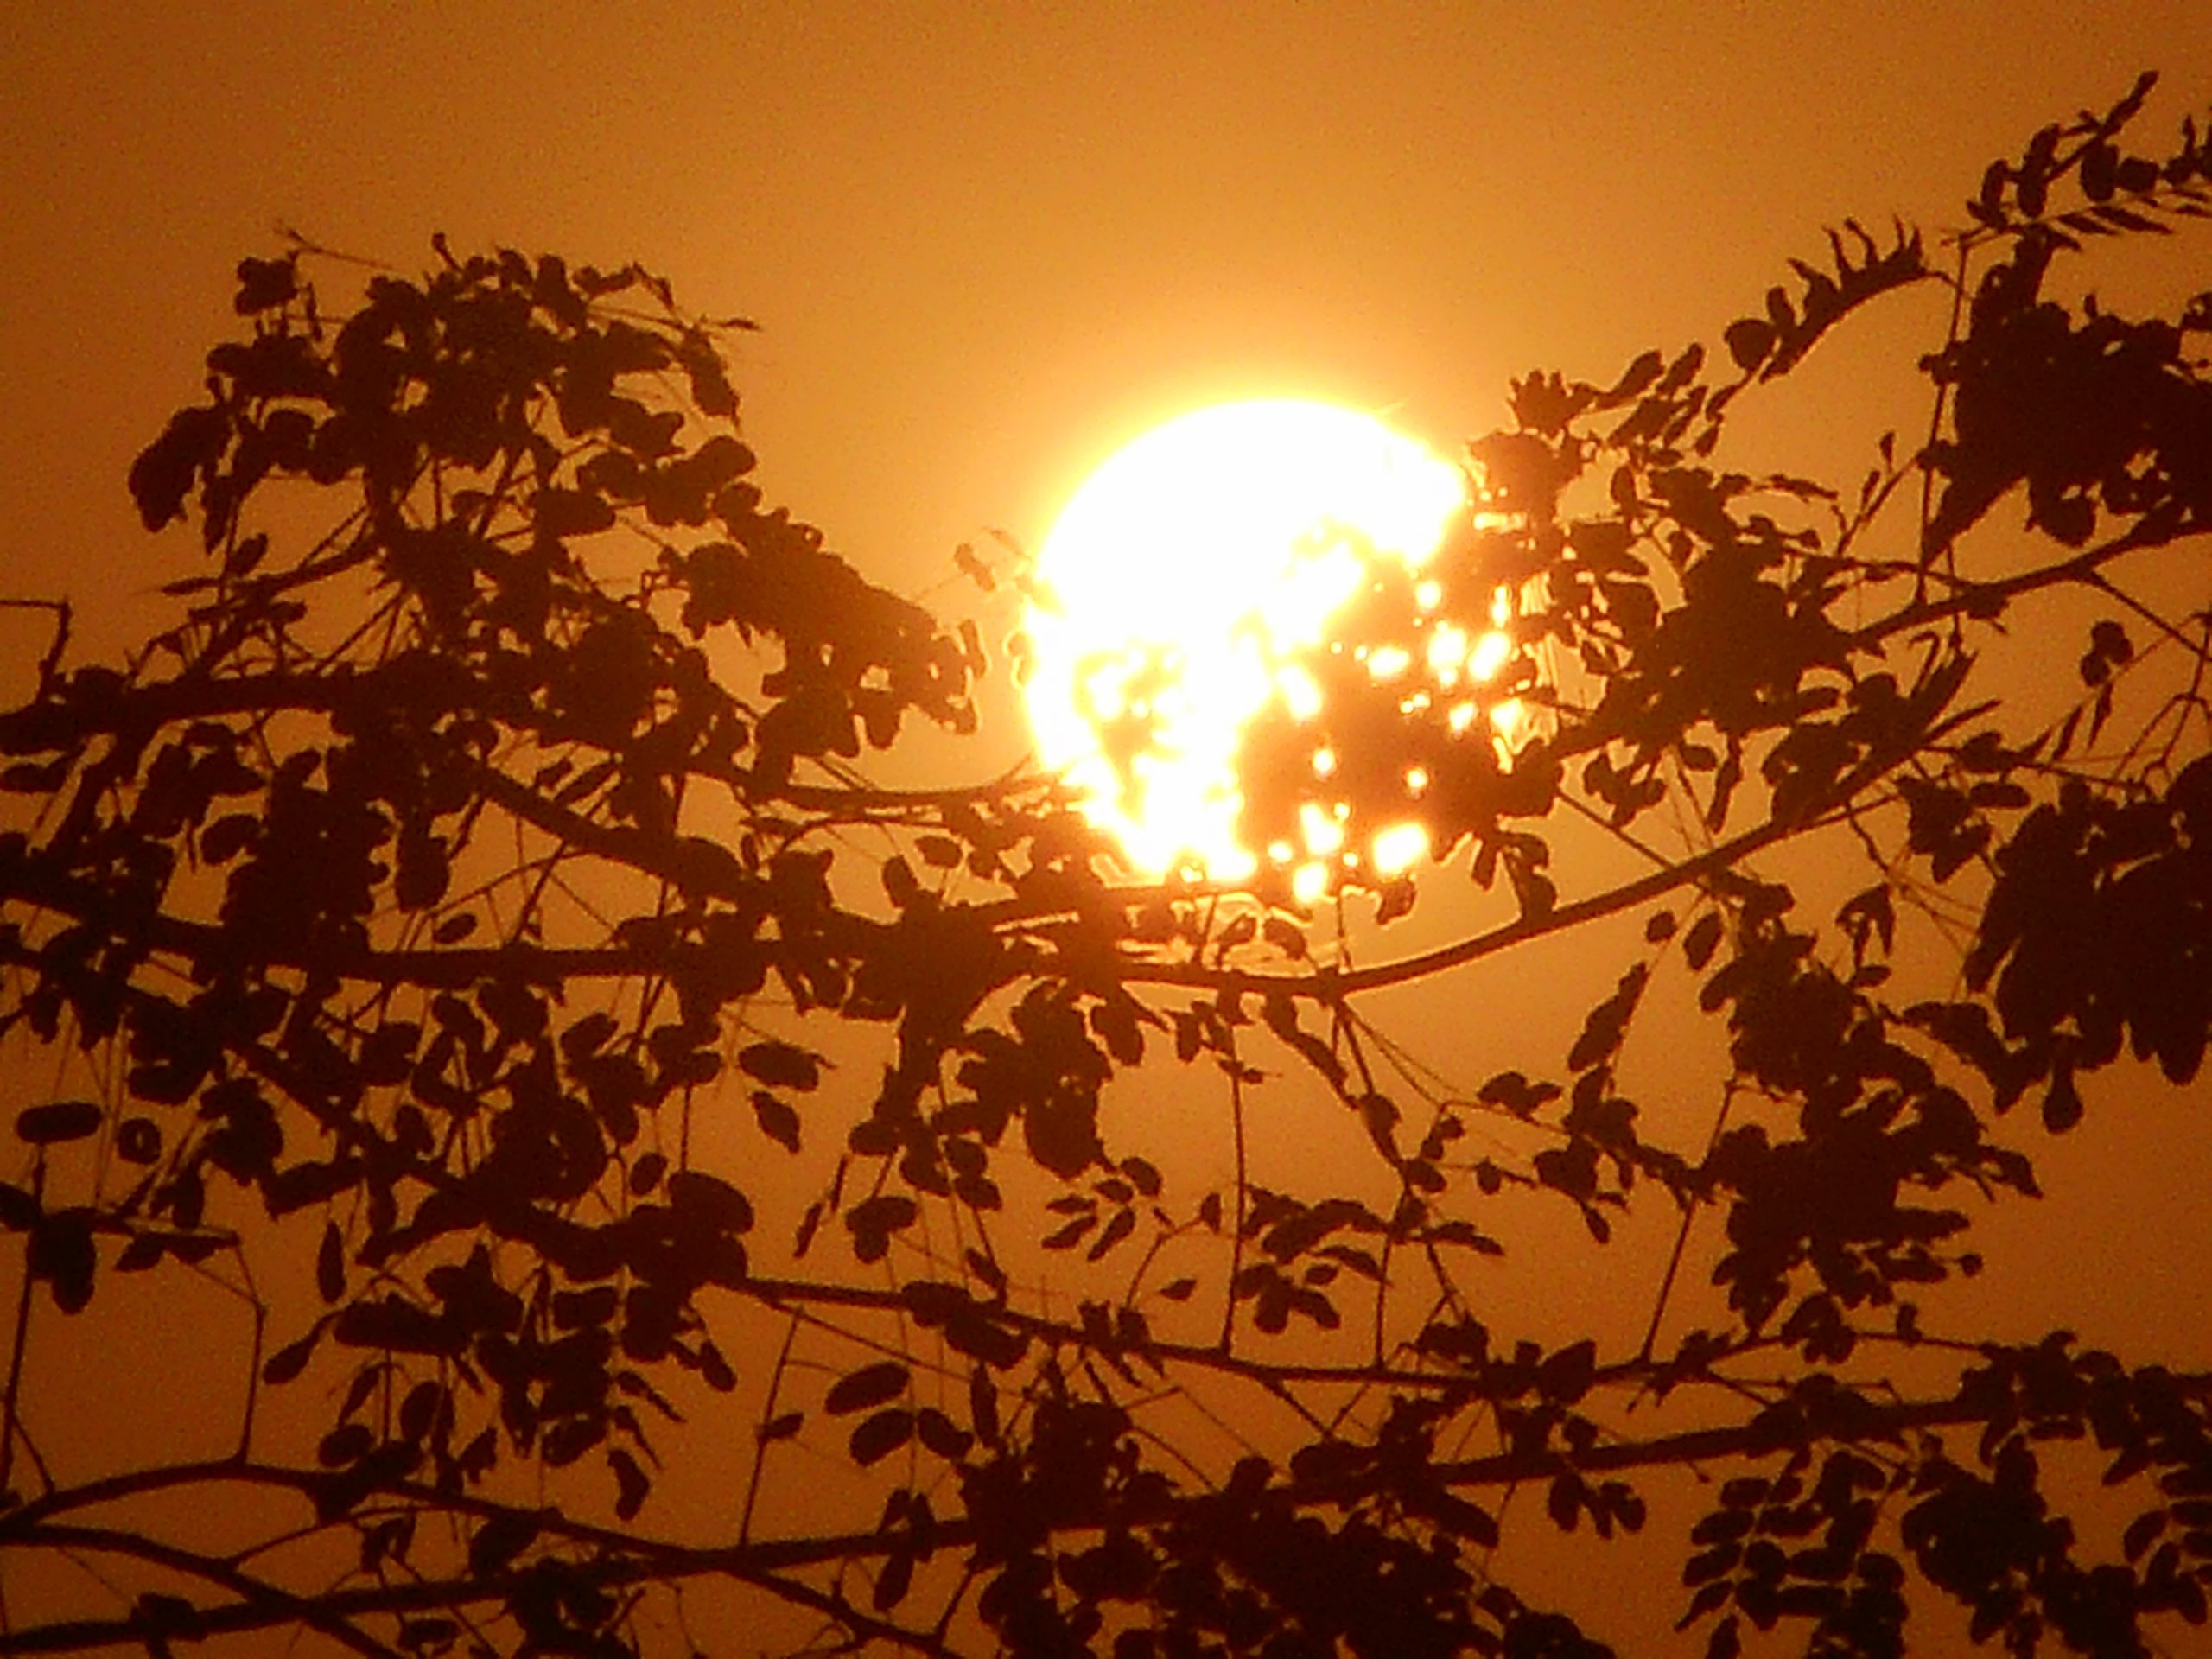 Sun behind branches